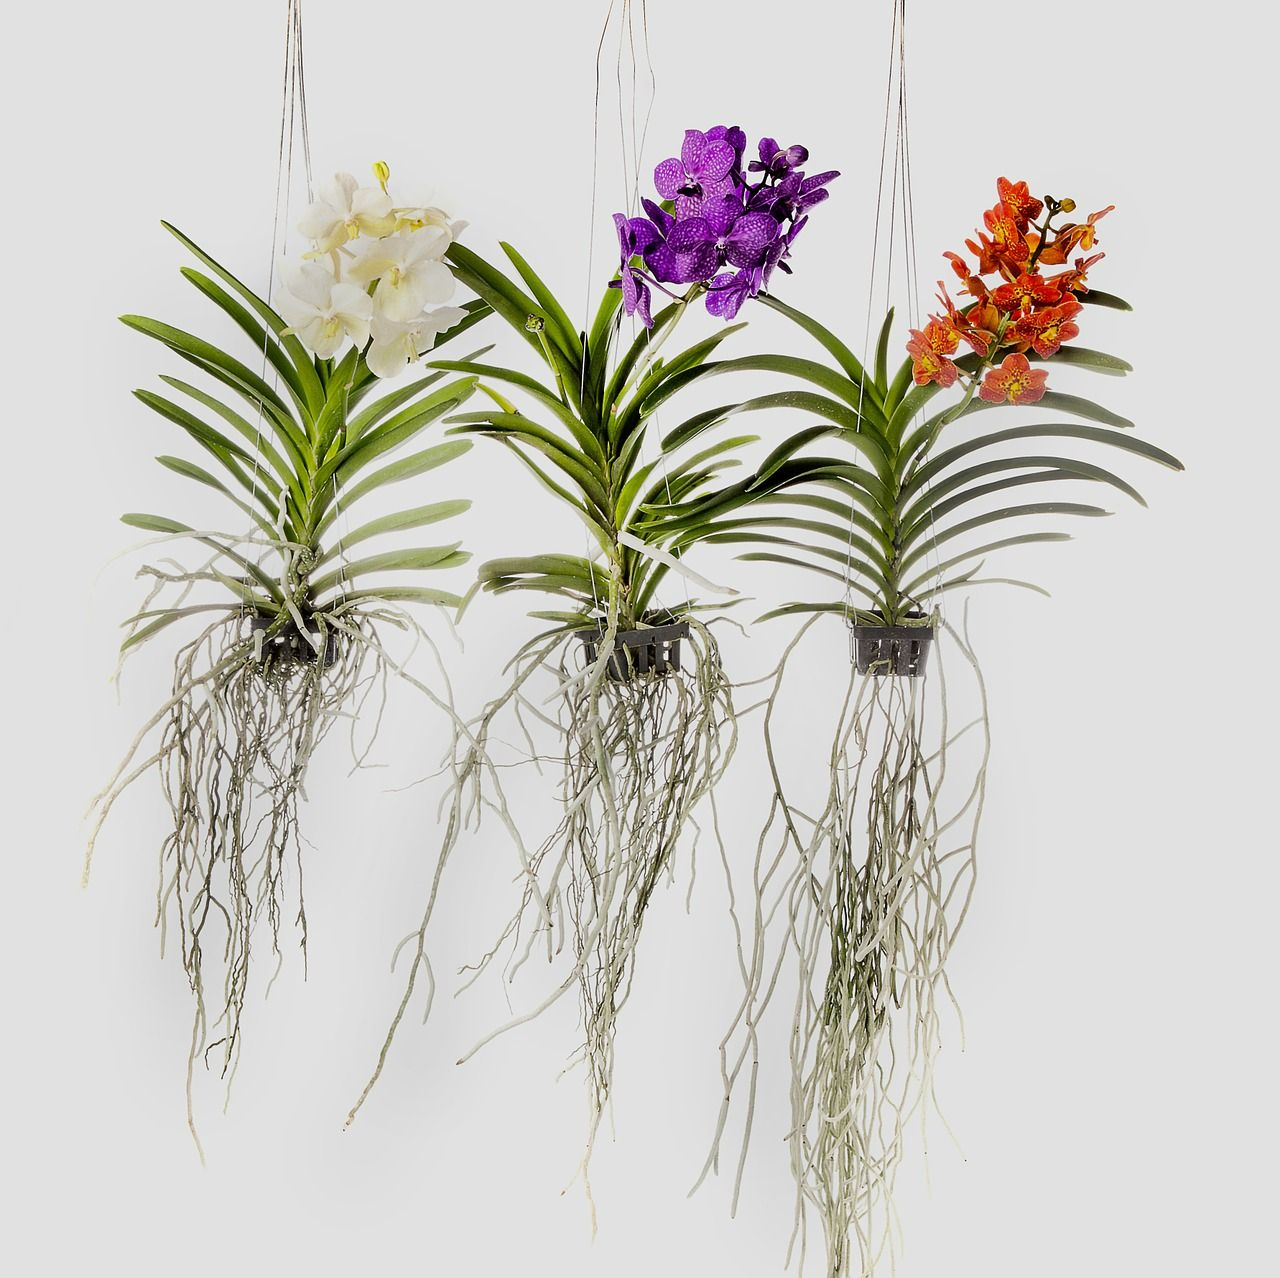 The Best Way To Grow Vanda Orchids Is To Grow Them Bare Rooted In Wooden Basket As They Have Extremely Long Roots Vanda Orchids Hanging Orchid Growing Orchids